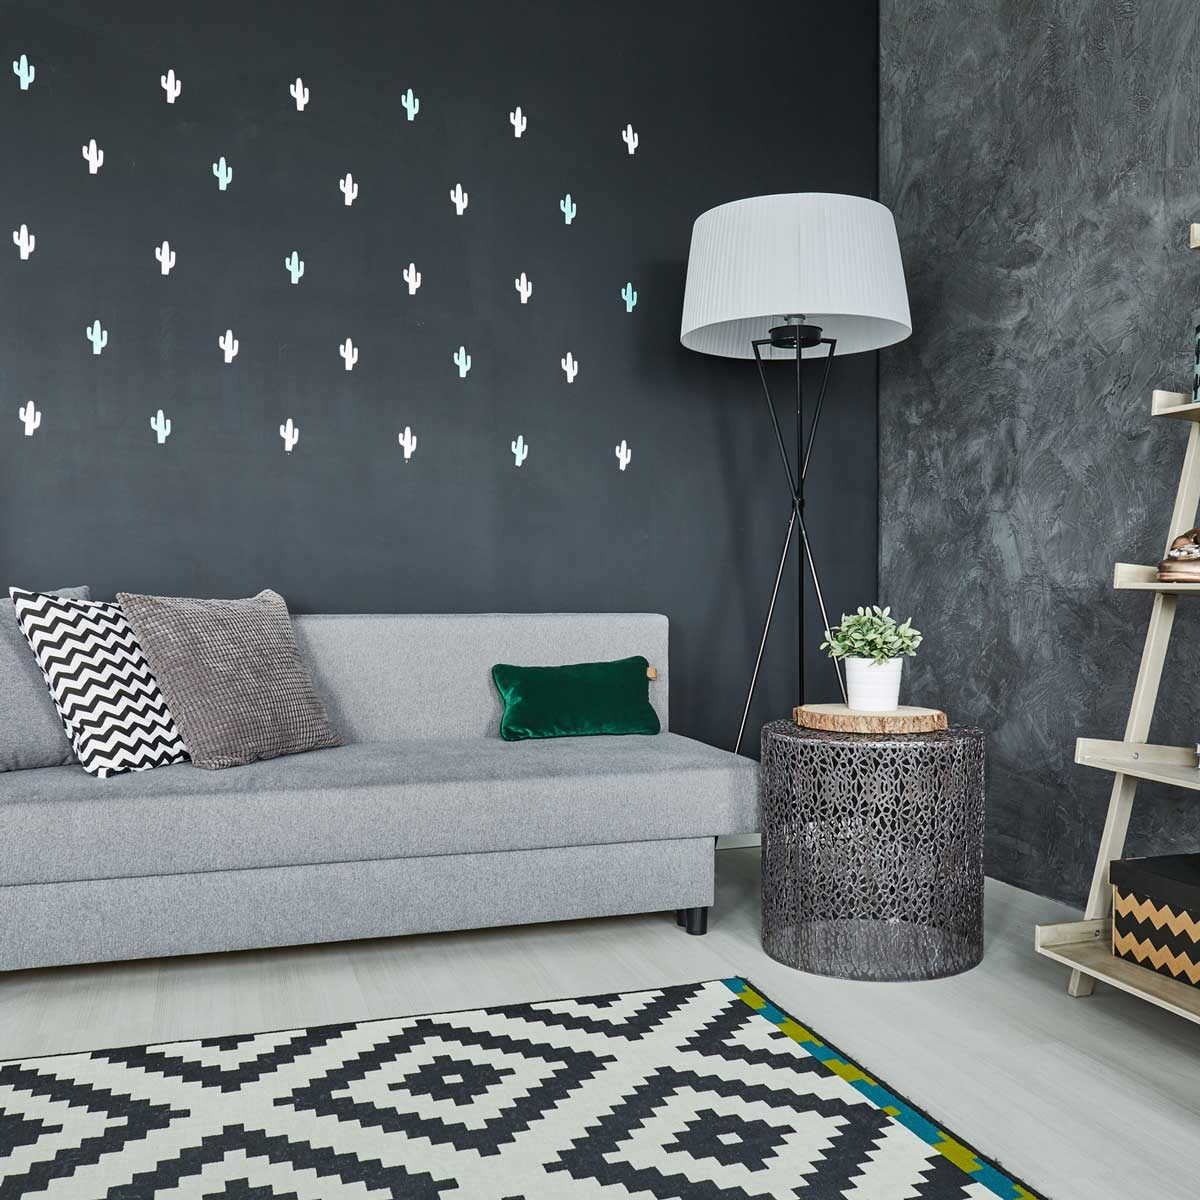 Living room with various patterns in black and white